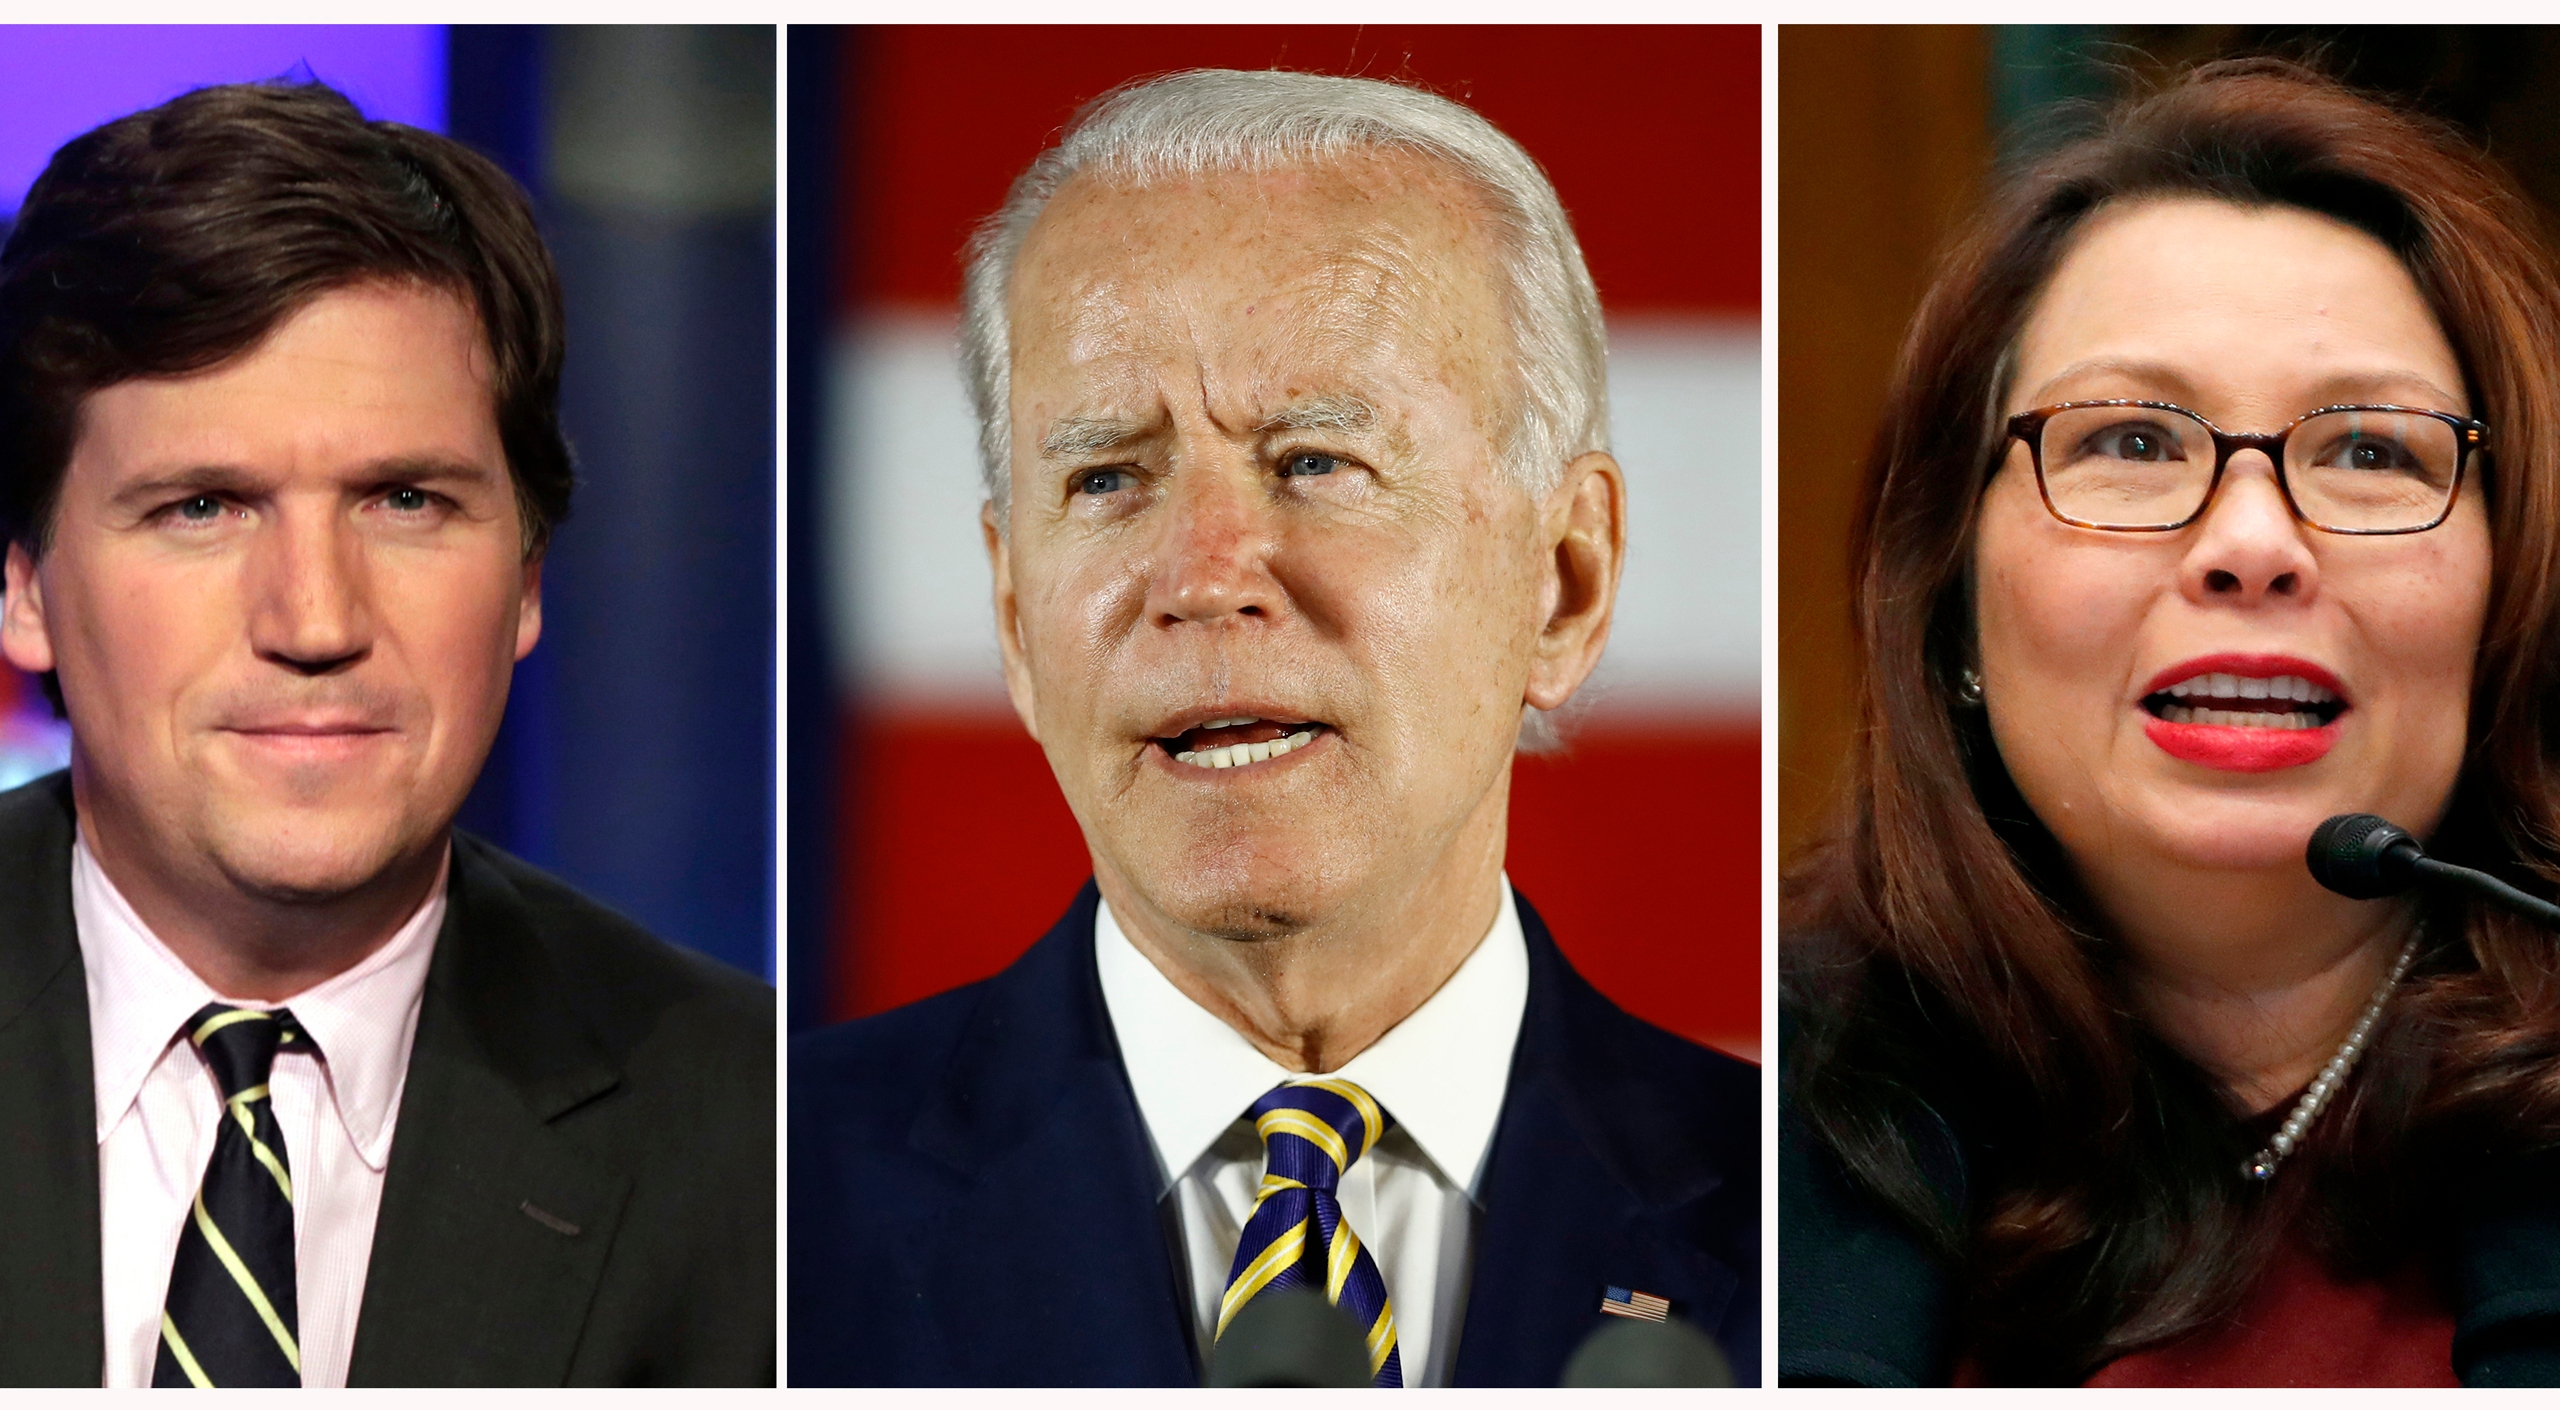 Tucker Carlson, Joe Biden, Tammy Duckworth